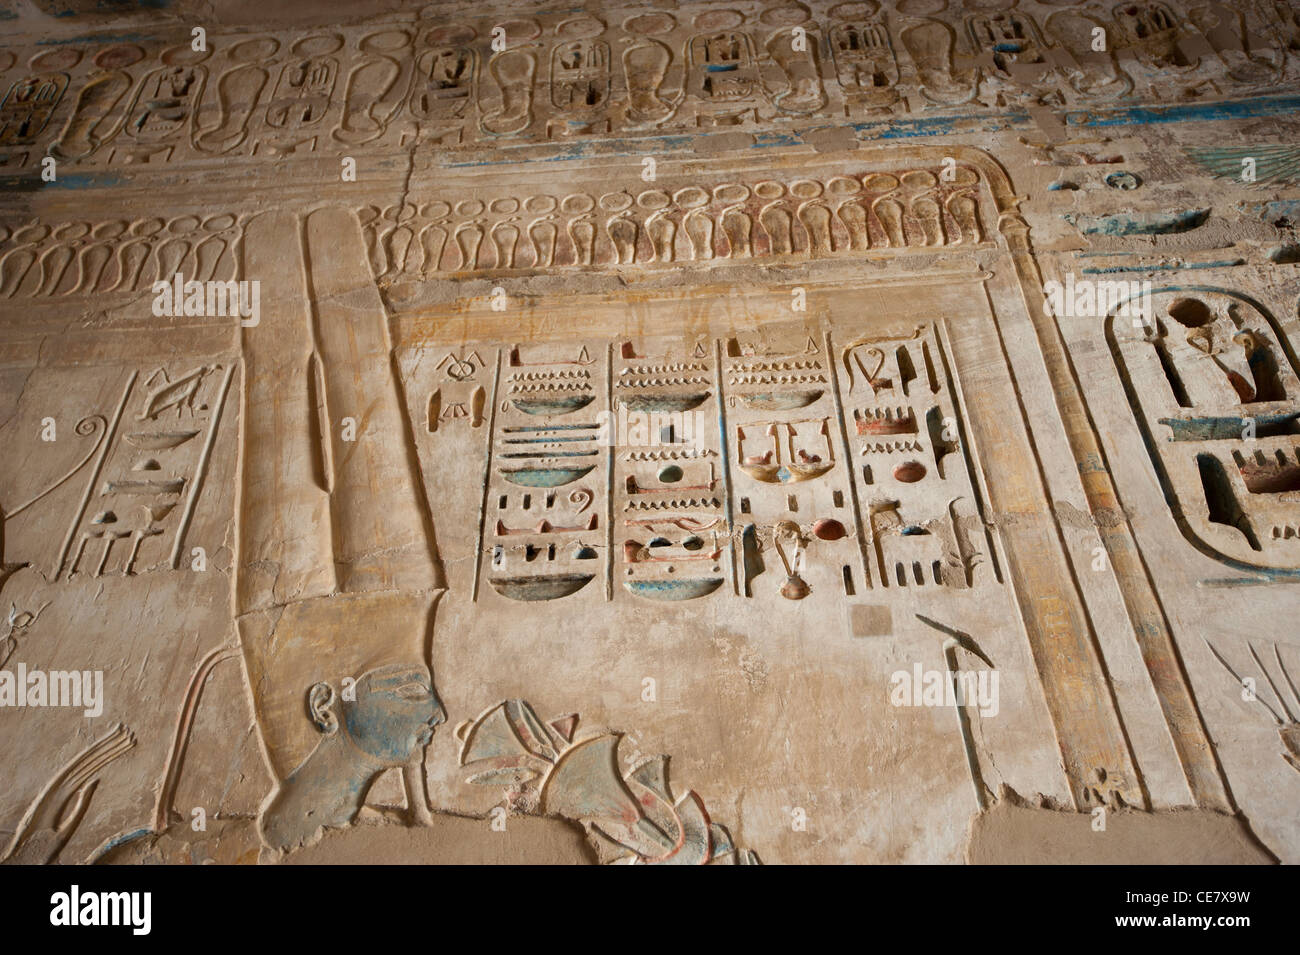 Egyptian hieroglyphic carvings and paintings on wall of